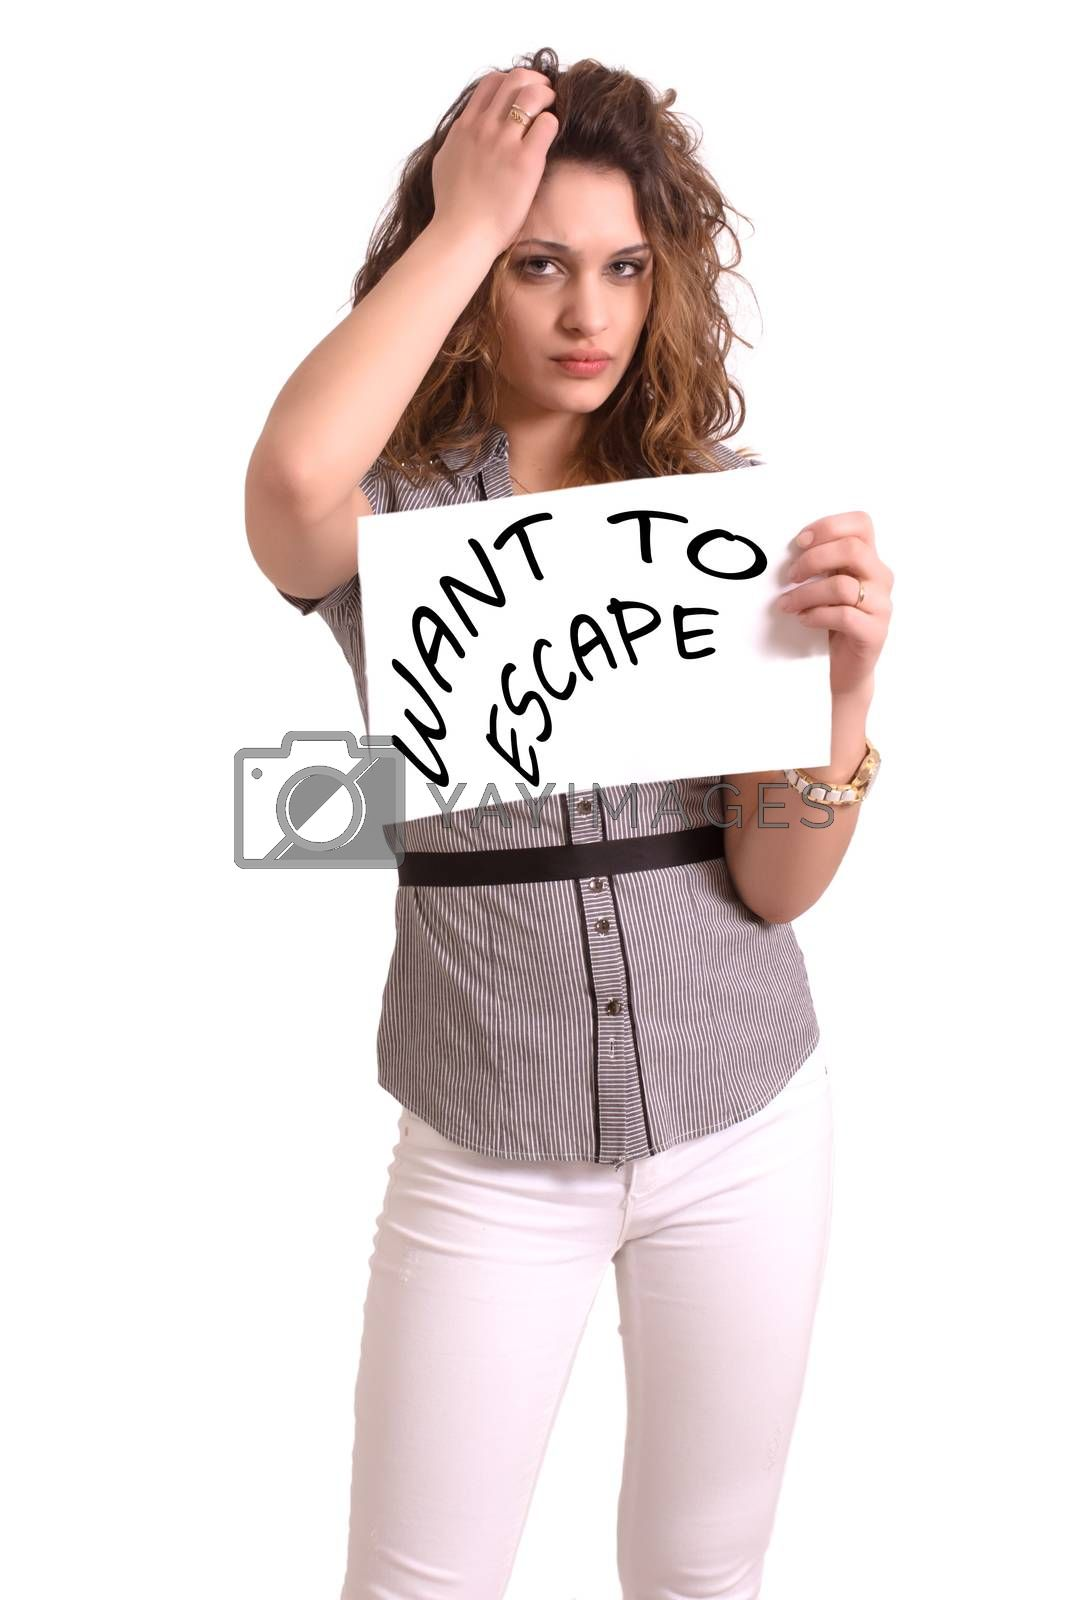 Young attractive woman holding paper with Want to escape text on white background